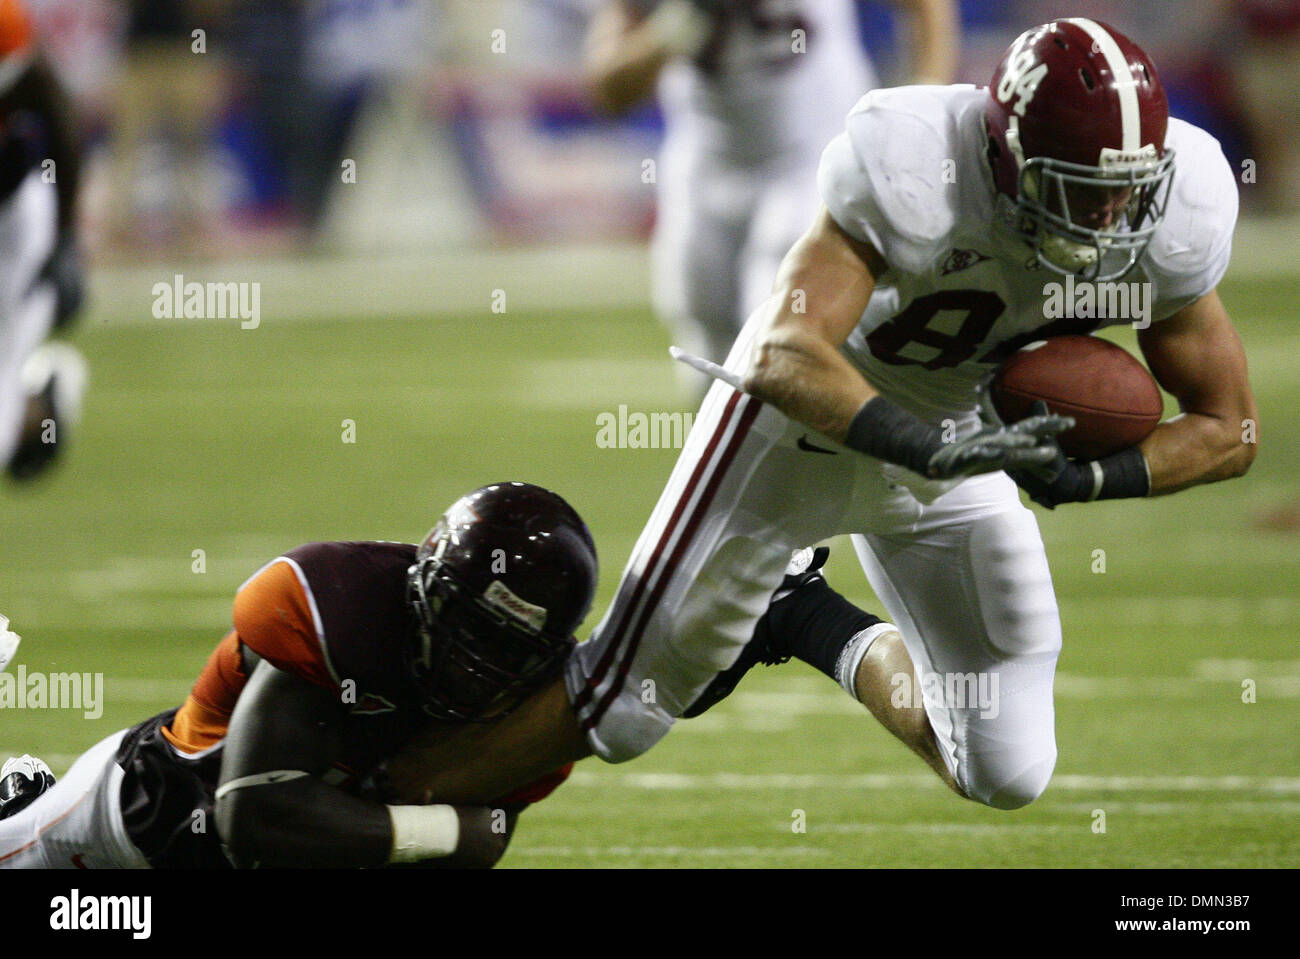 Sep 05, 2009 - Atlanta, Georgia, USA - NCAA Football - Alabama's COLIN PEEK (84) gets tripped up by Virginia Tech's KAM CHANCELLOR, left, during the second half of the schools' season opener in the Georgia Dome. (Credit Image: © Josh D. Weiss/ZUMA Press) - Stock Image